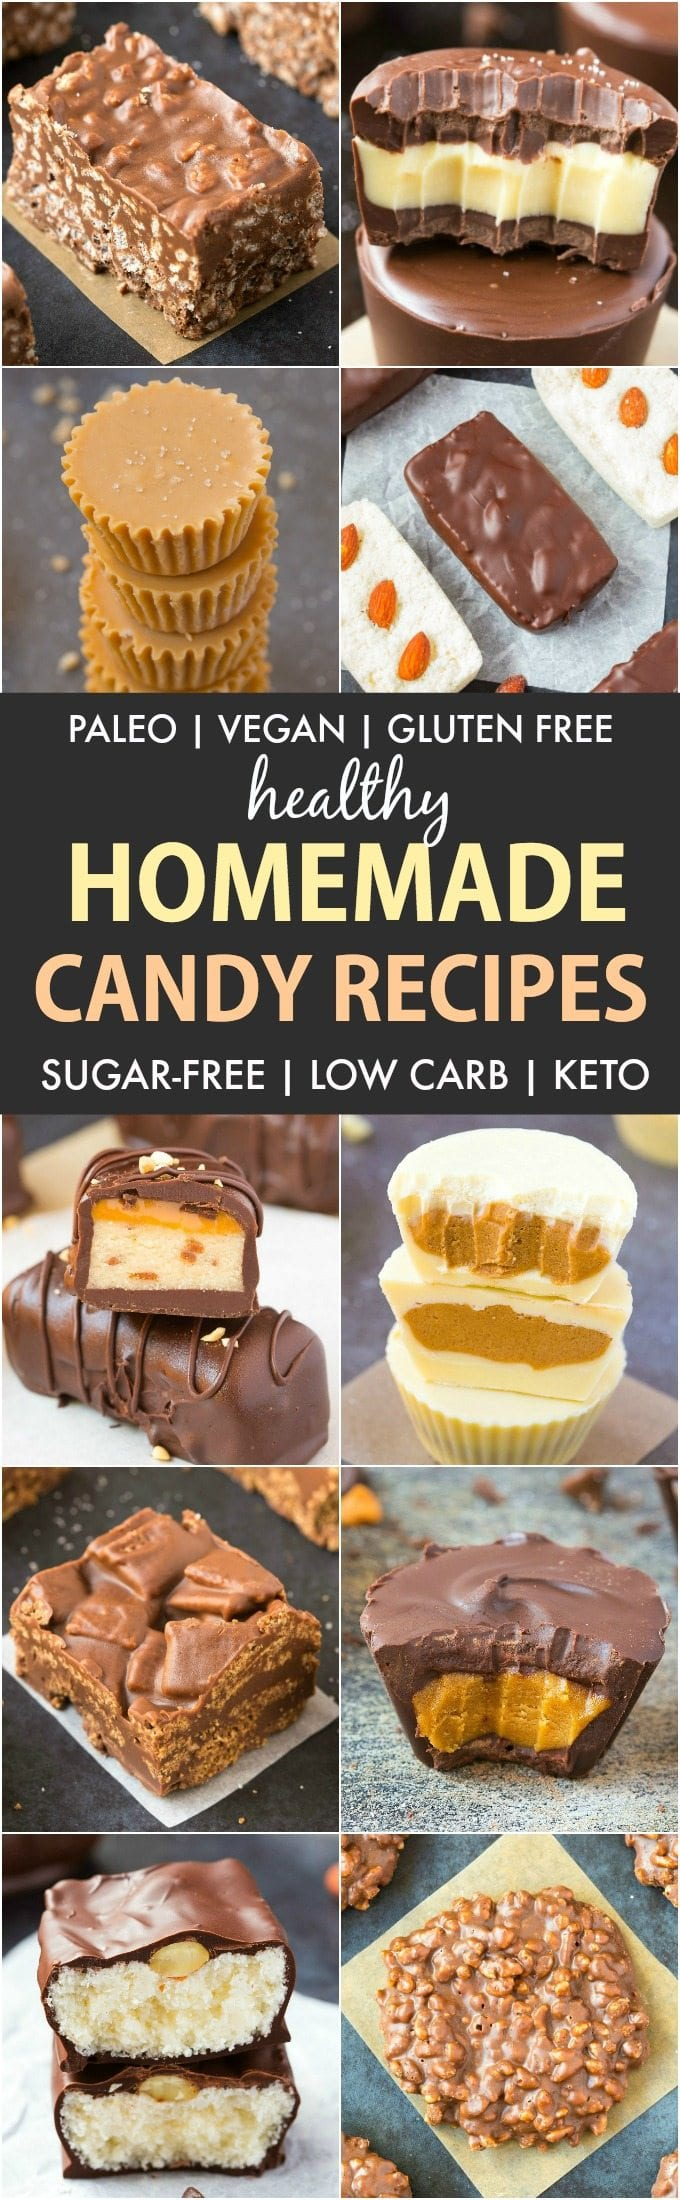 Healthy Homemade Candy Recipes (Paleo, Vegan, Gluten Free)- Easy Copycat Candy Bars given a healthy makeover! Fudge, chocolate bars, soft candy and more! Keto + low carb options too! #homemadecandy #candyrecipe #sugarfree #healthy | Recipe on thebigmansworld.com